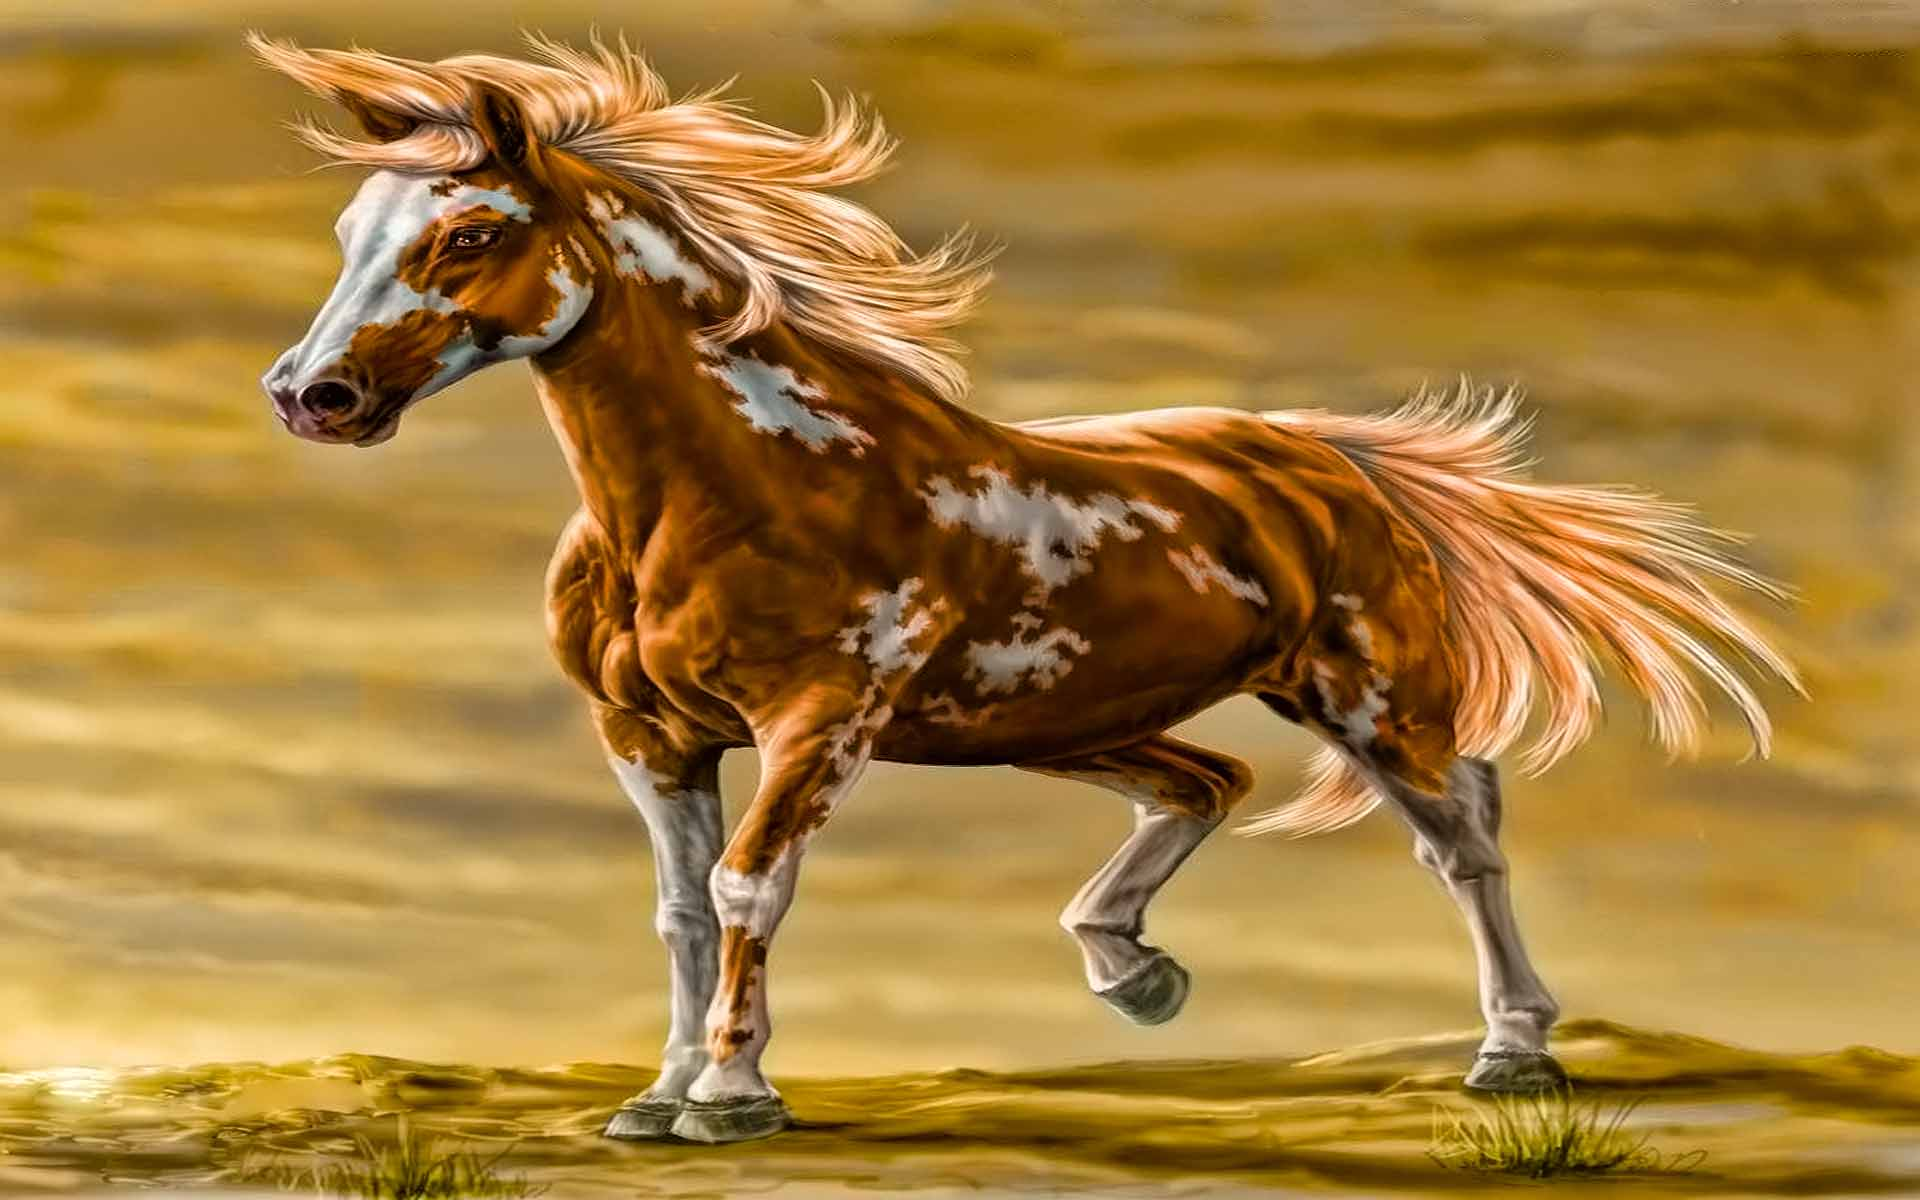 Horse Hd Wallpaper Background Image 1920x1200 Id 490232